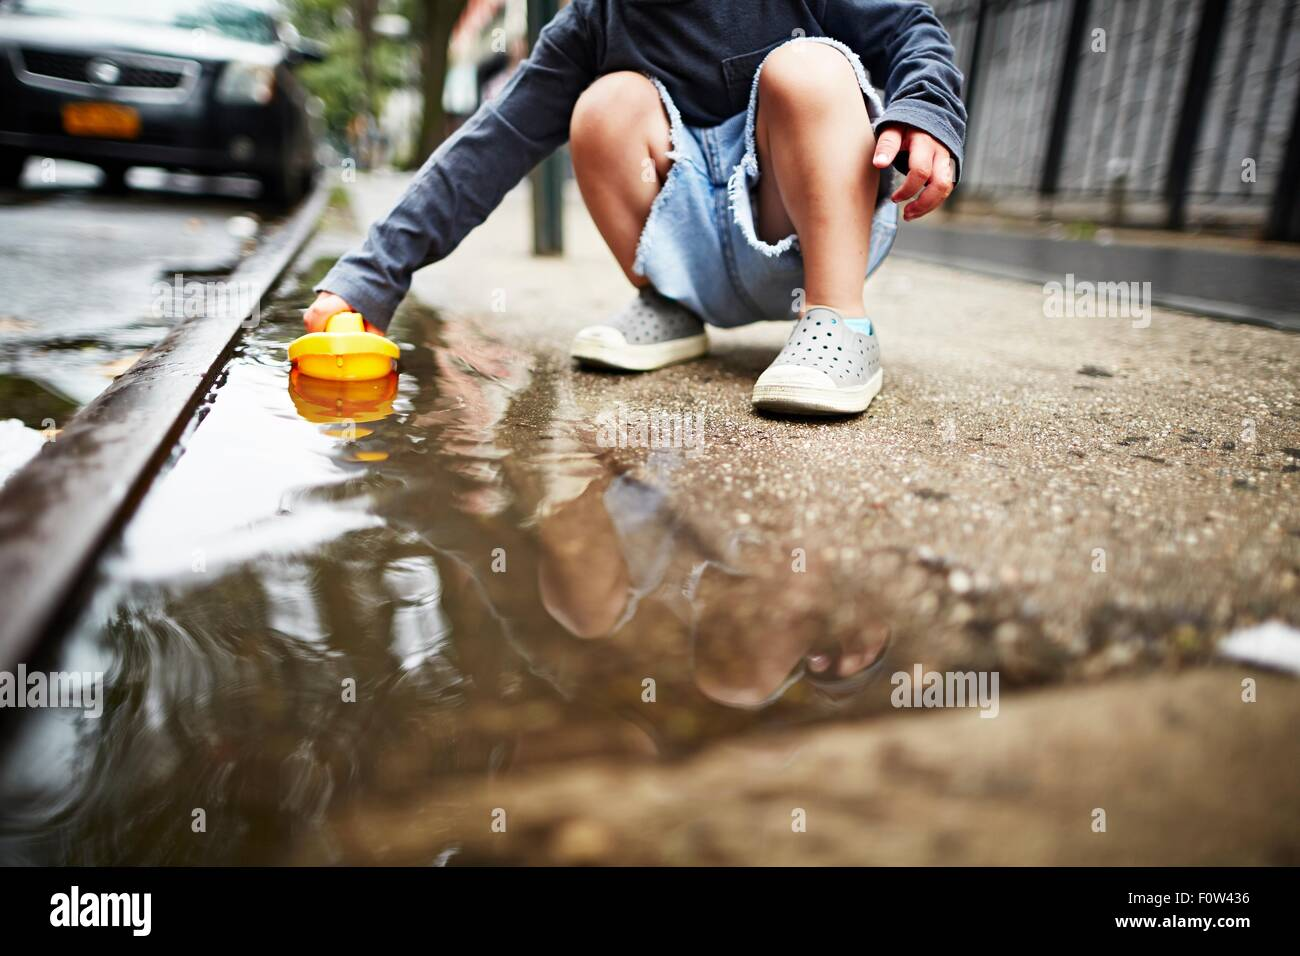 Boy Playing with toy voile sur l'eau sur la chaussée Photo Stock